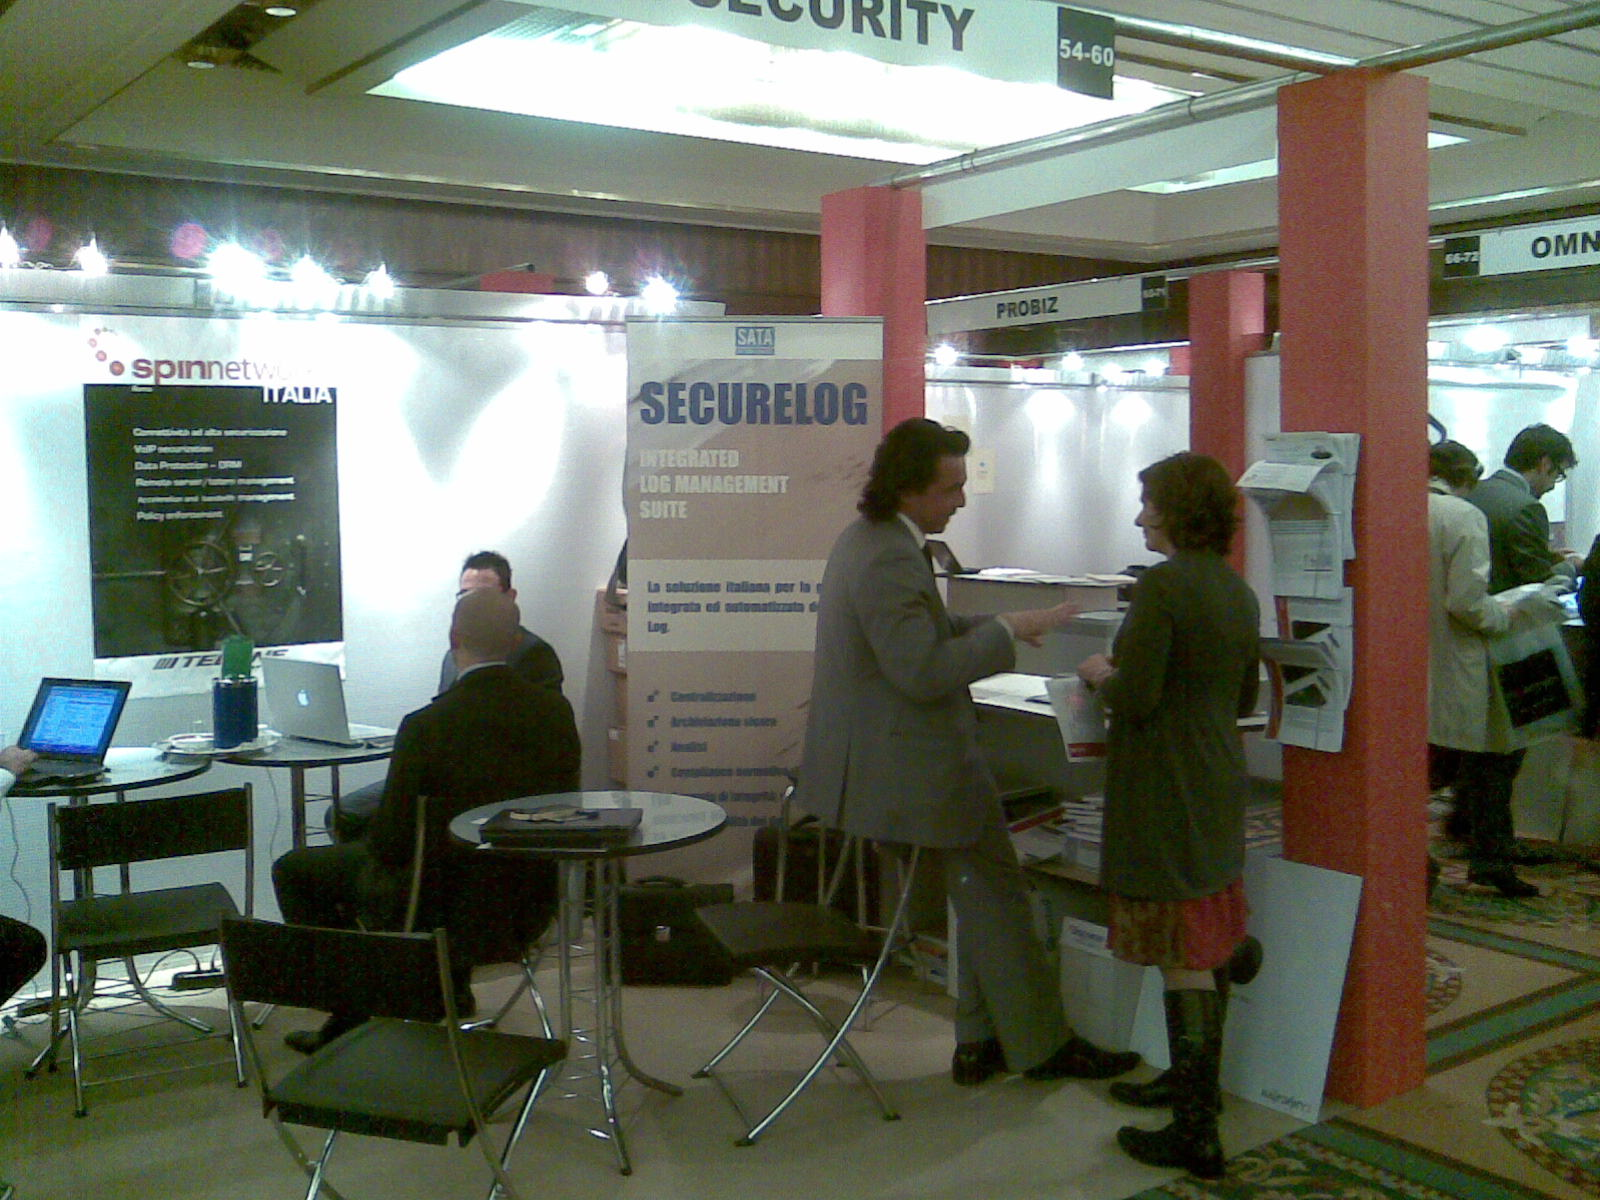 Techne Security e Sata HTS con Securelog a ICT Security